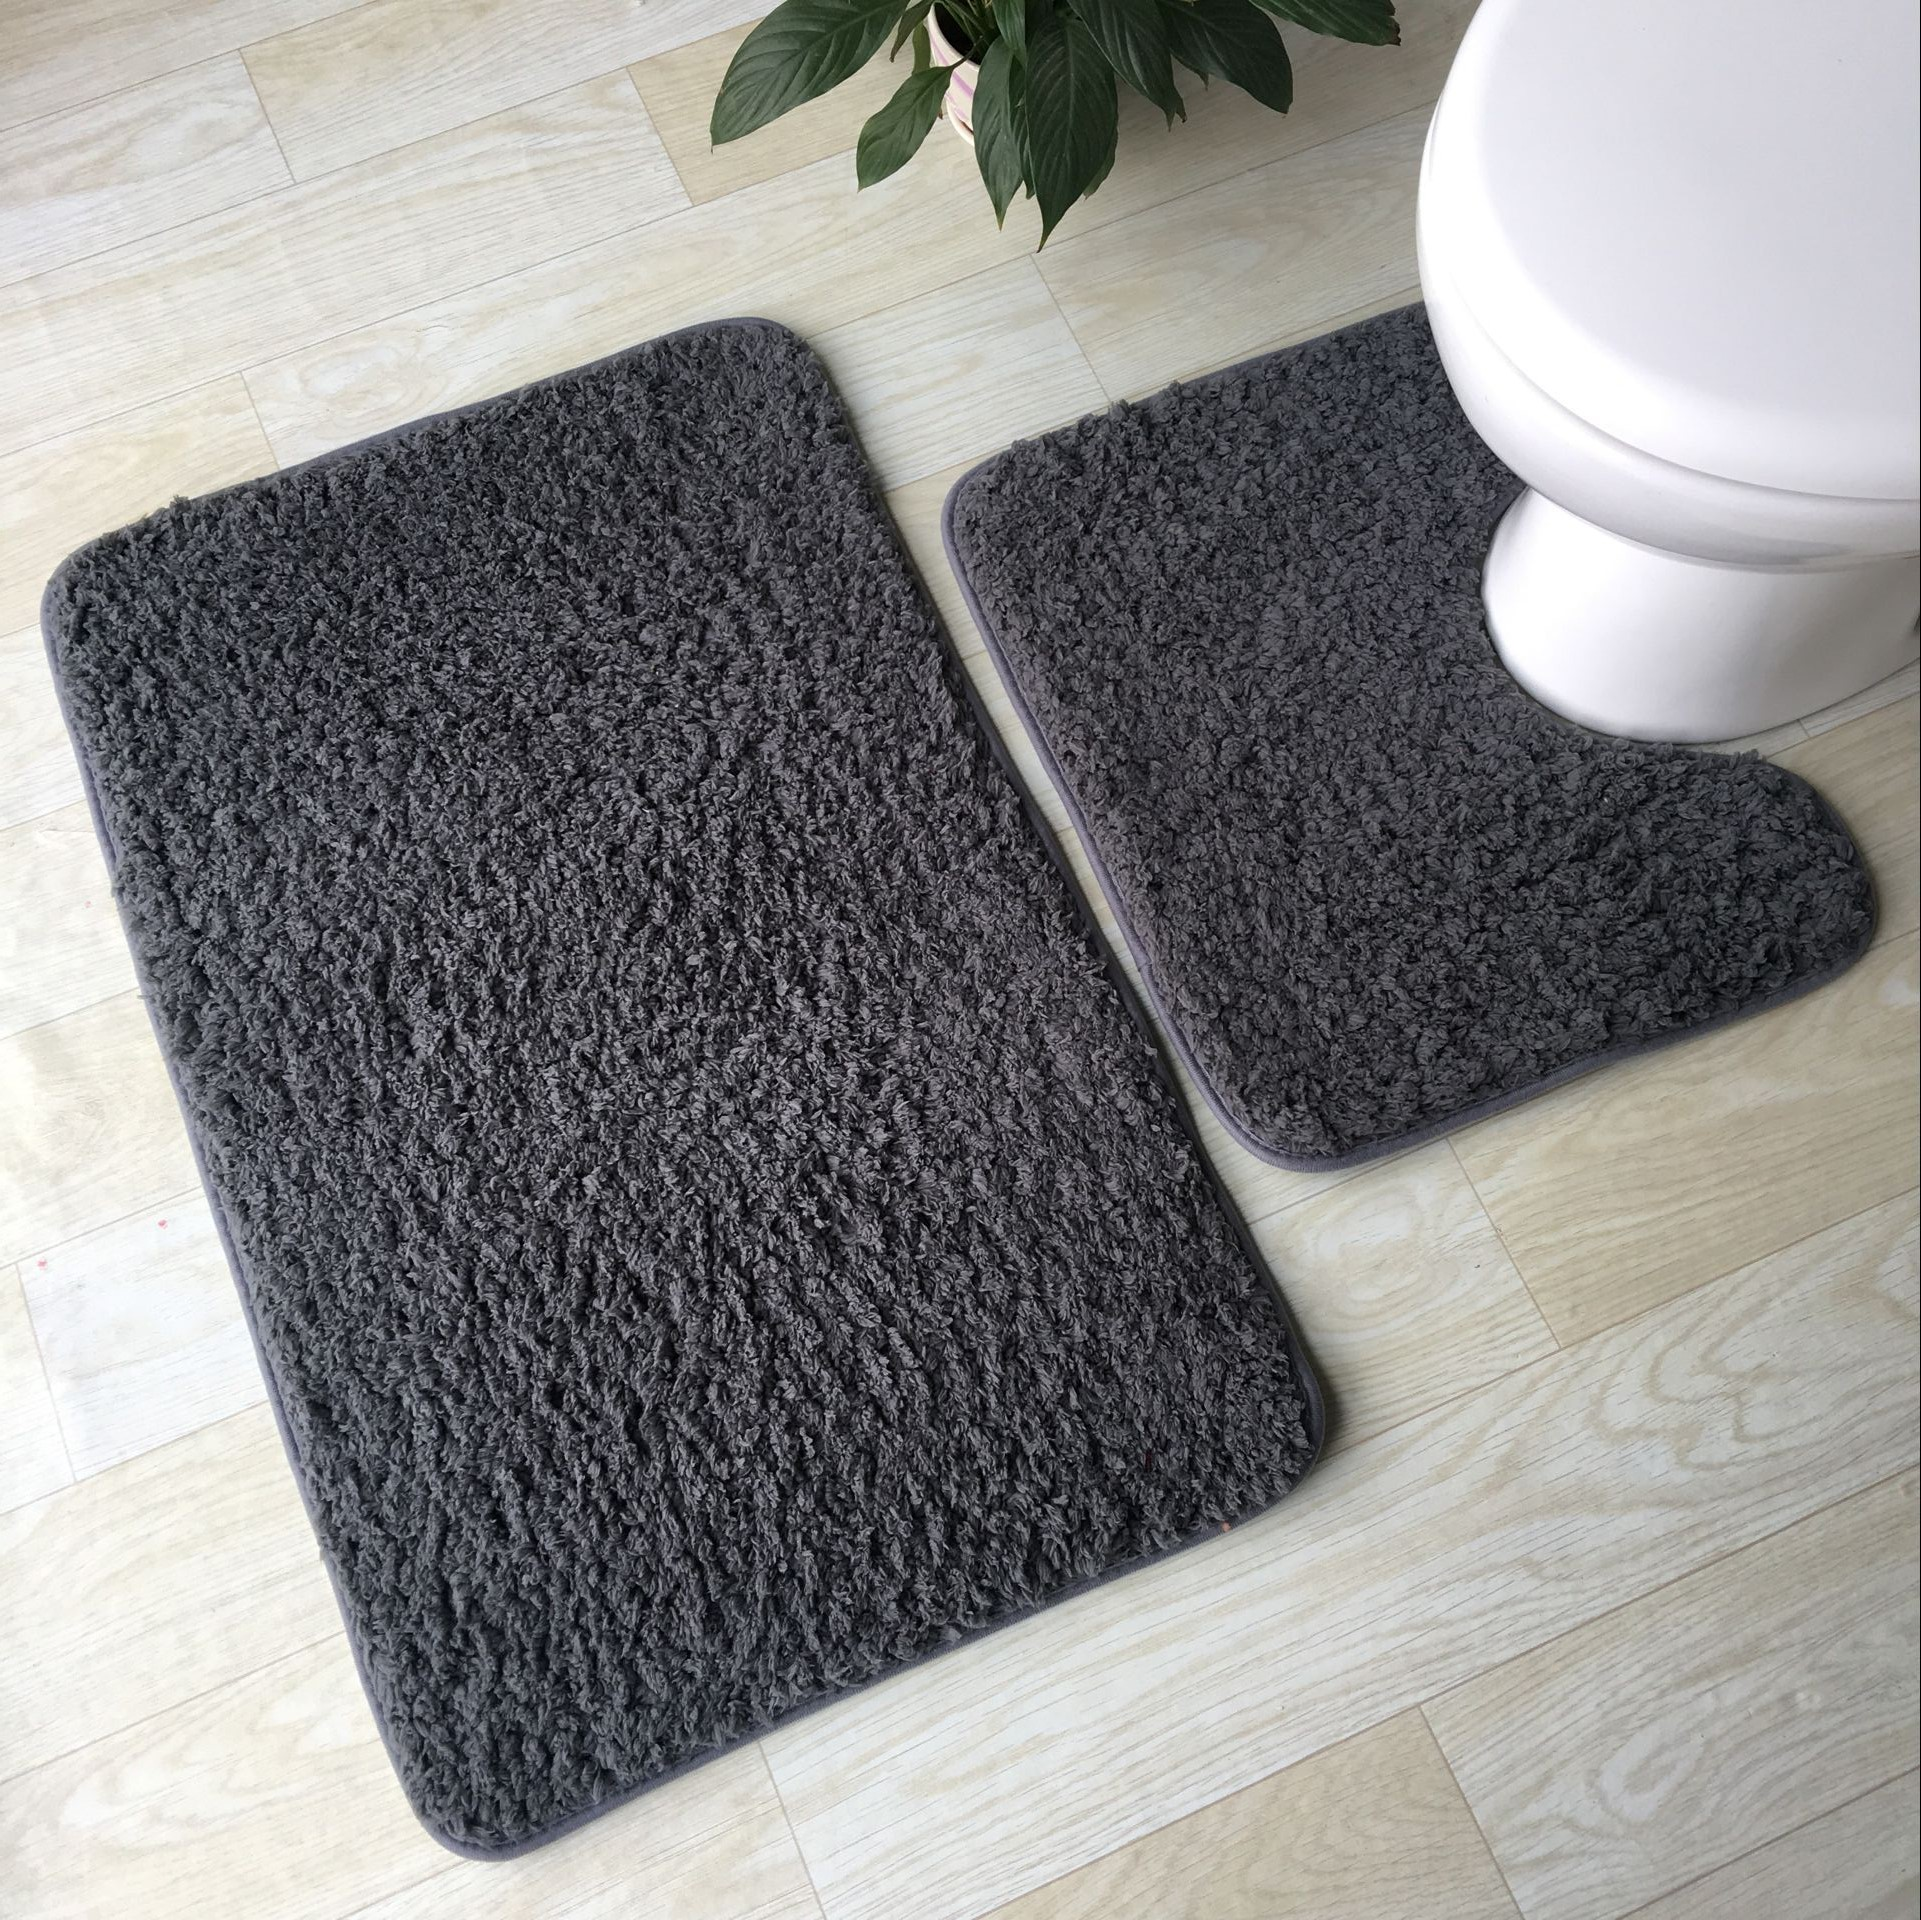 zipper mat achenbinfeng warm seat dhgate striped sale product toilet popular bathroom closestool cover washable case overcoat com from cushion lid